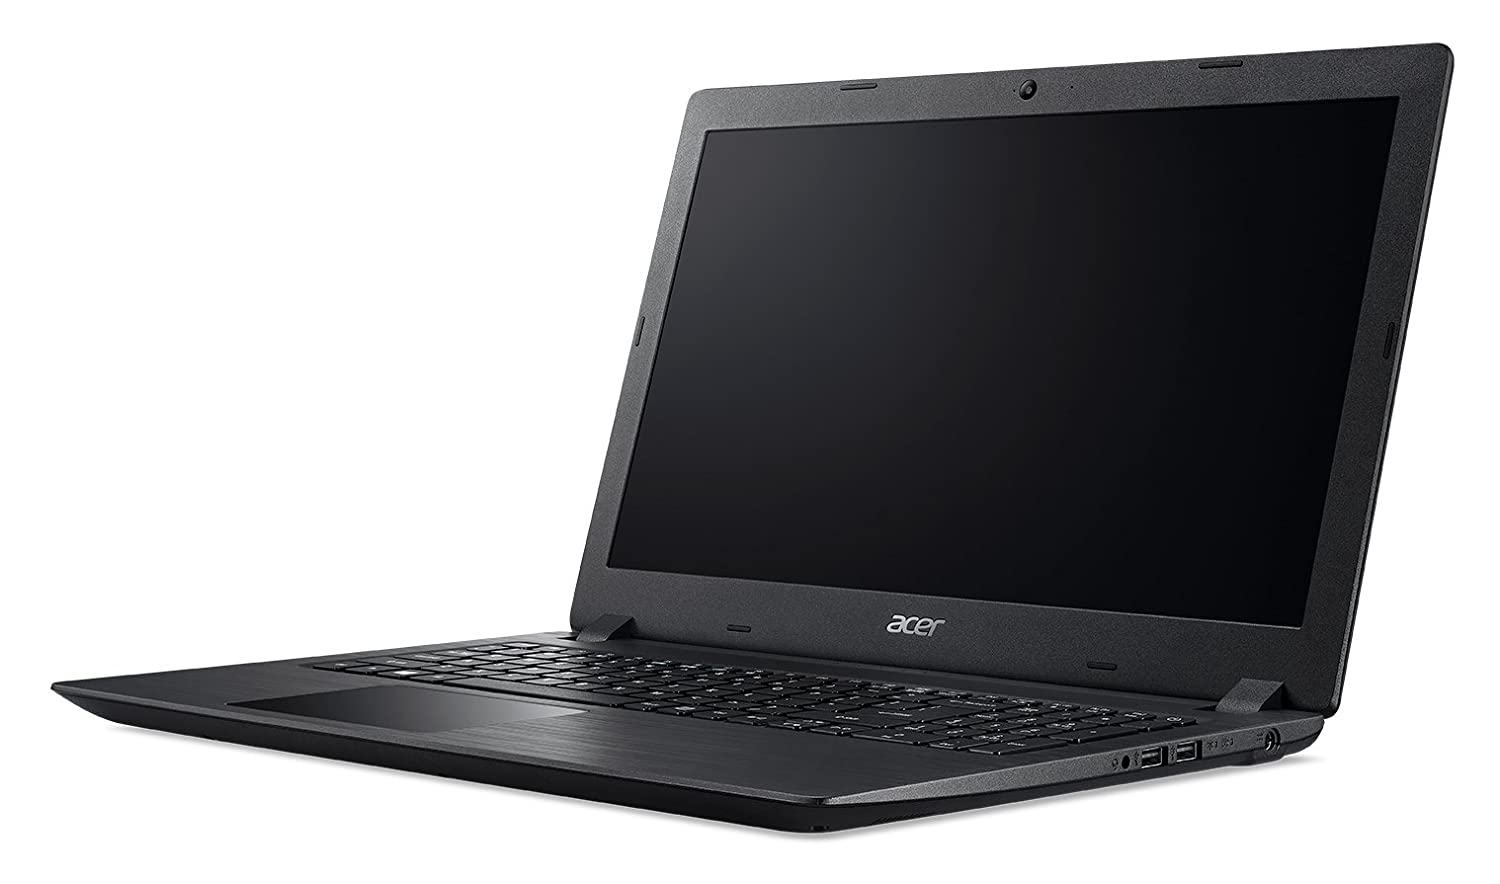 Amazon.com: Acer Aspire 3 A315-51-51SL, 15.6